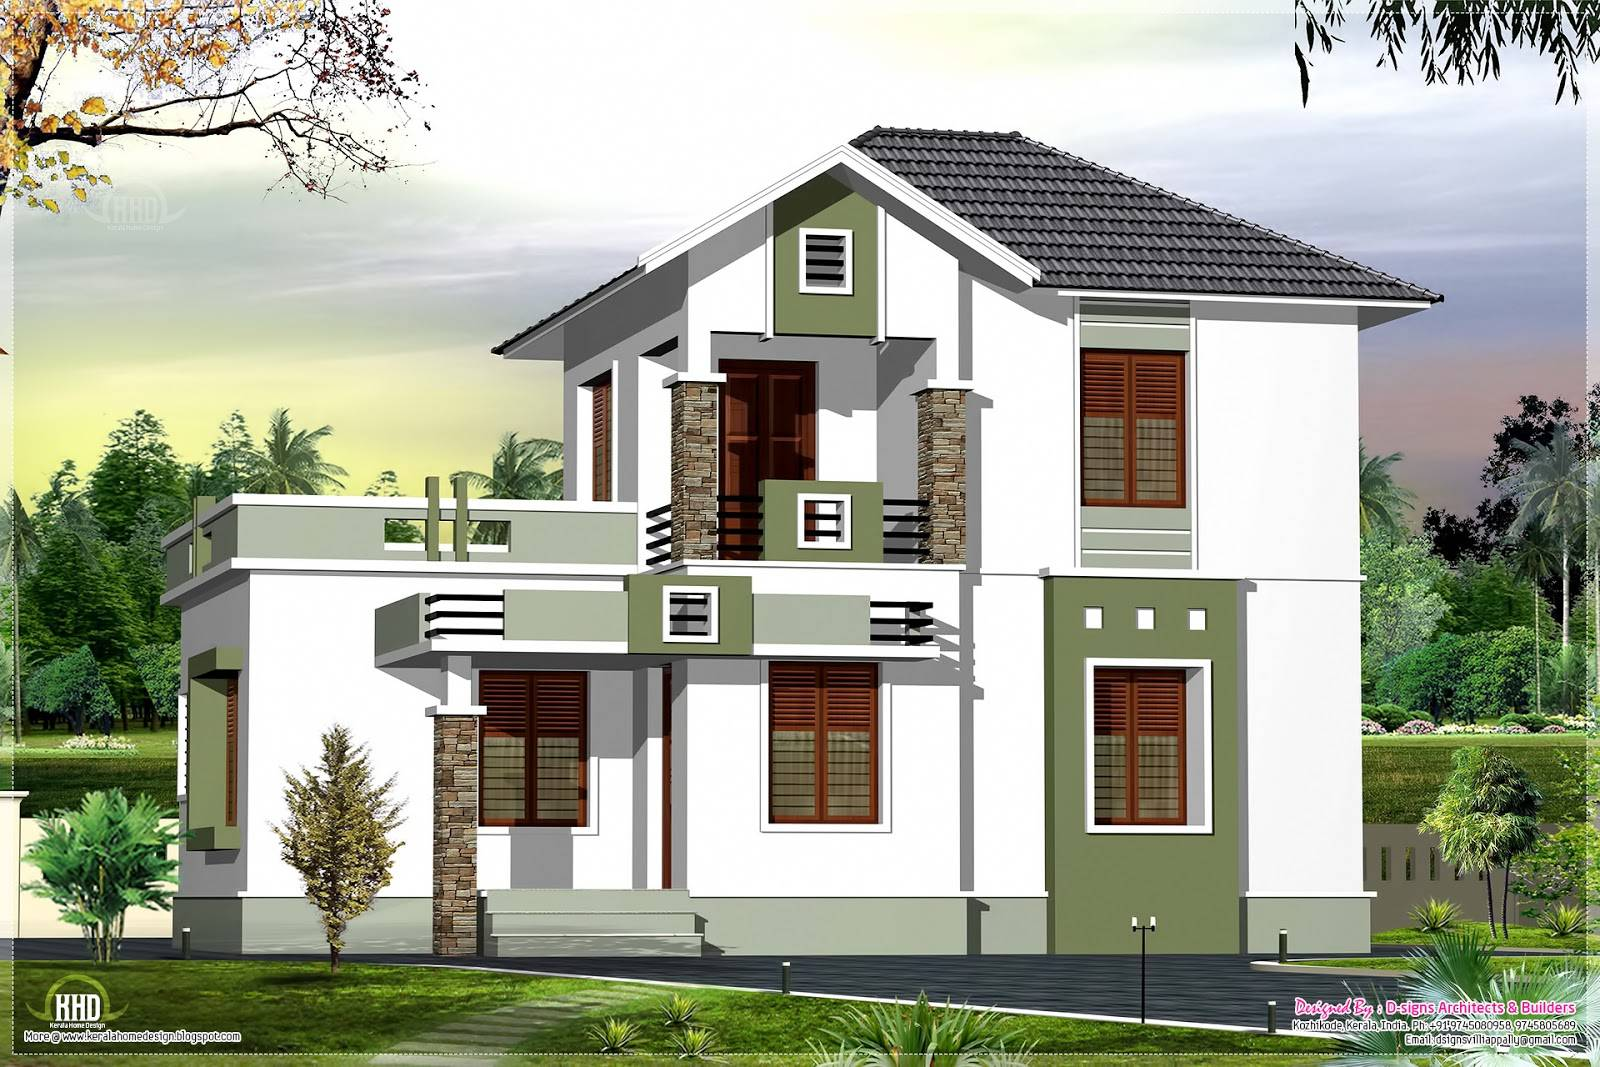 Rear Balcony Home Designs House Plans 2017